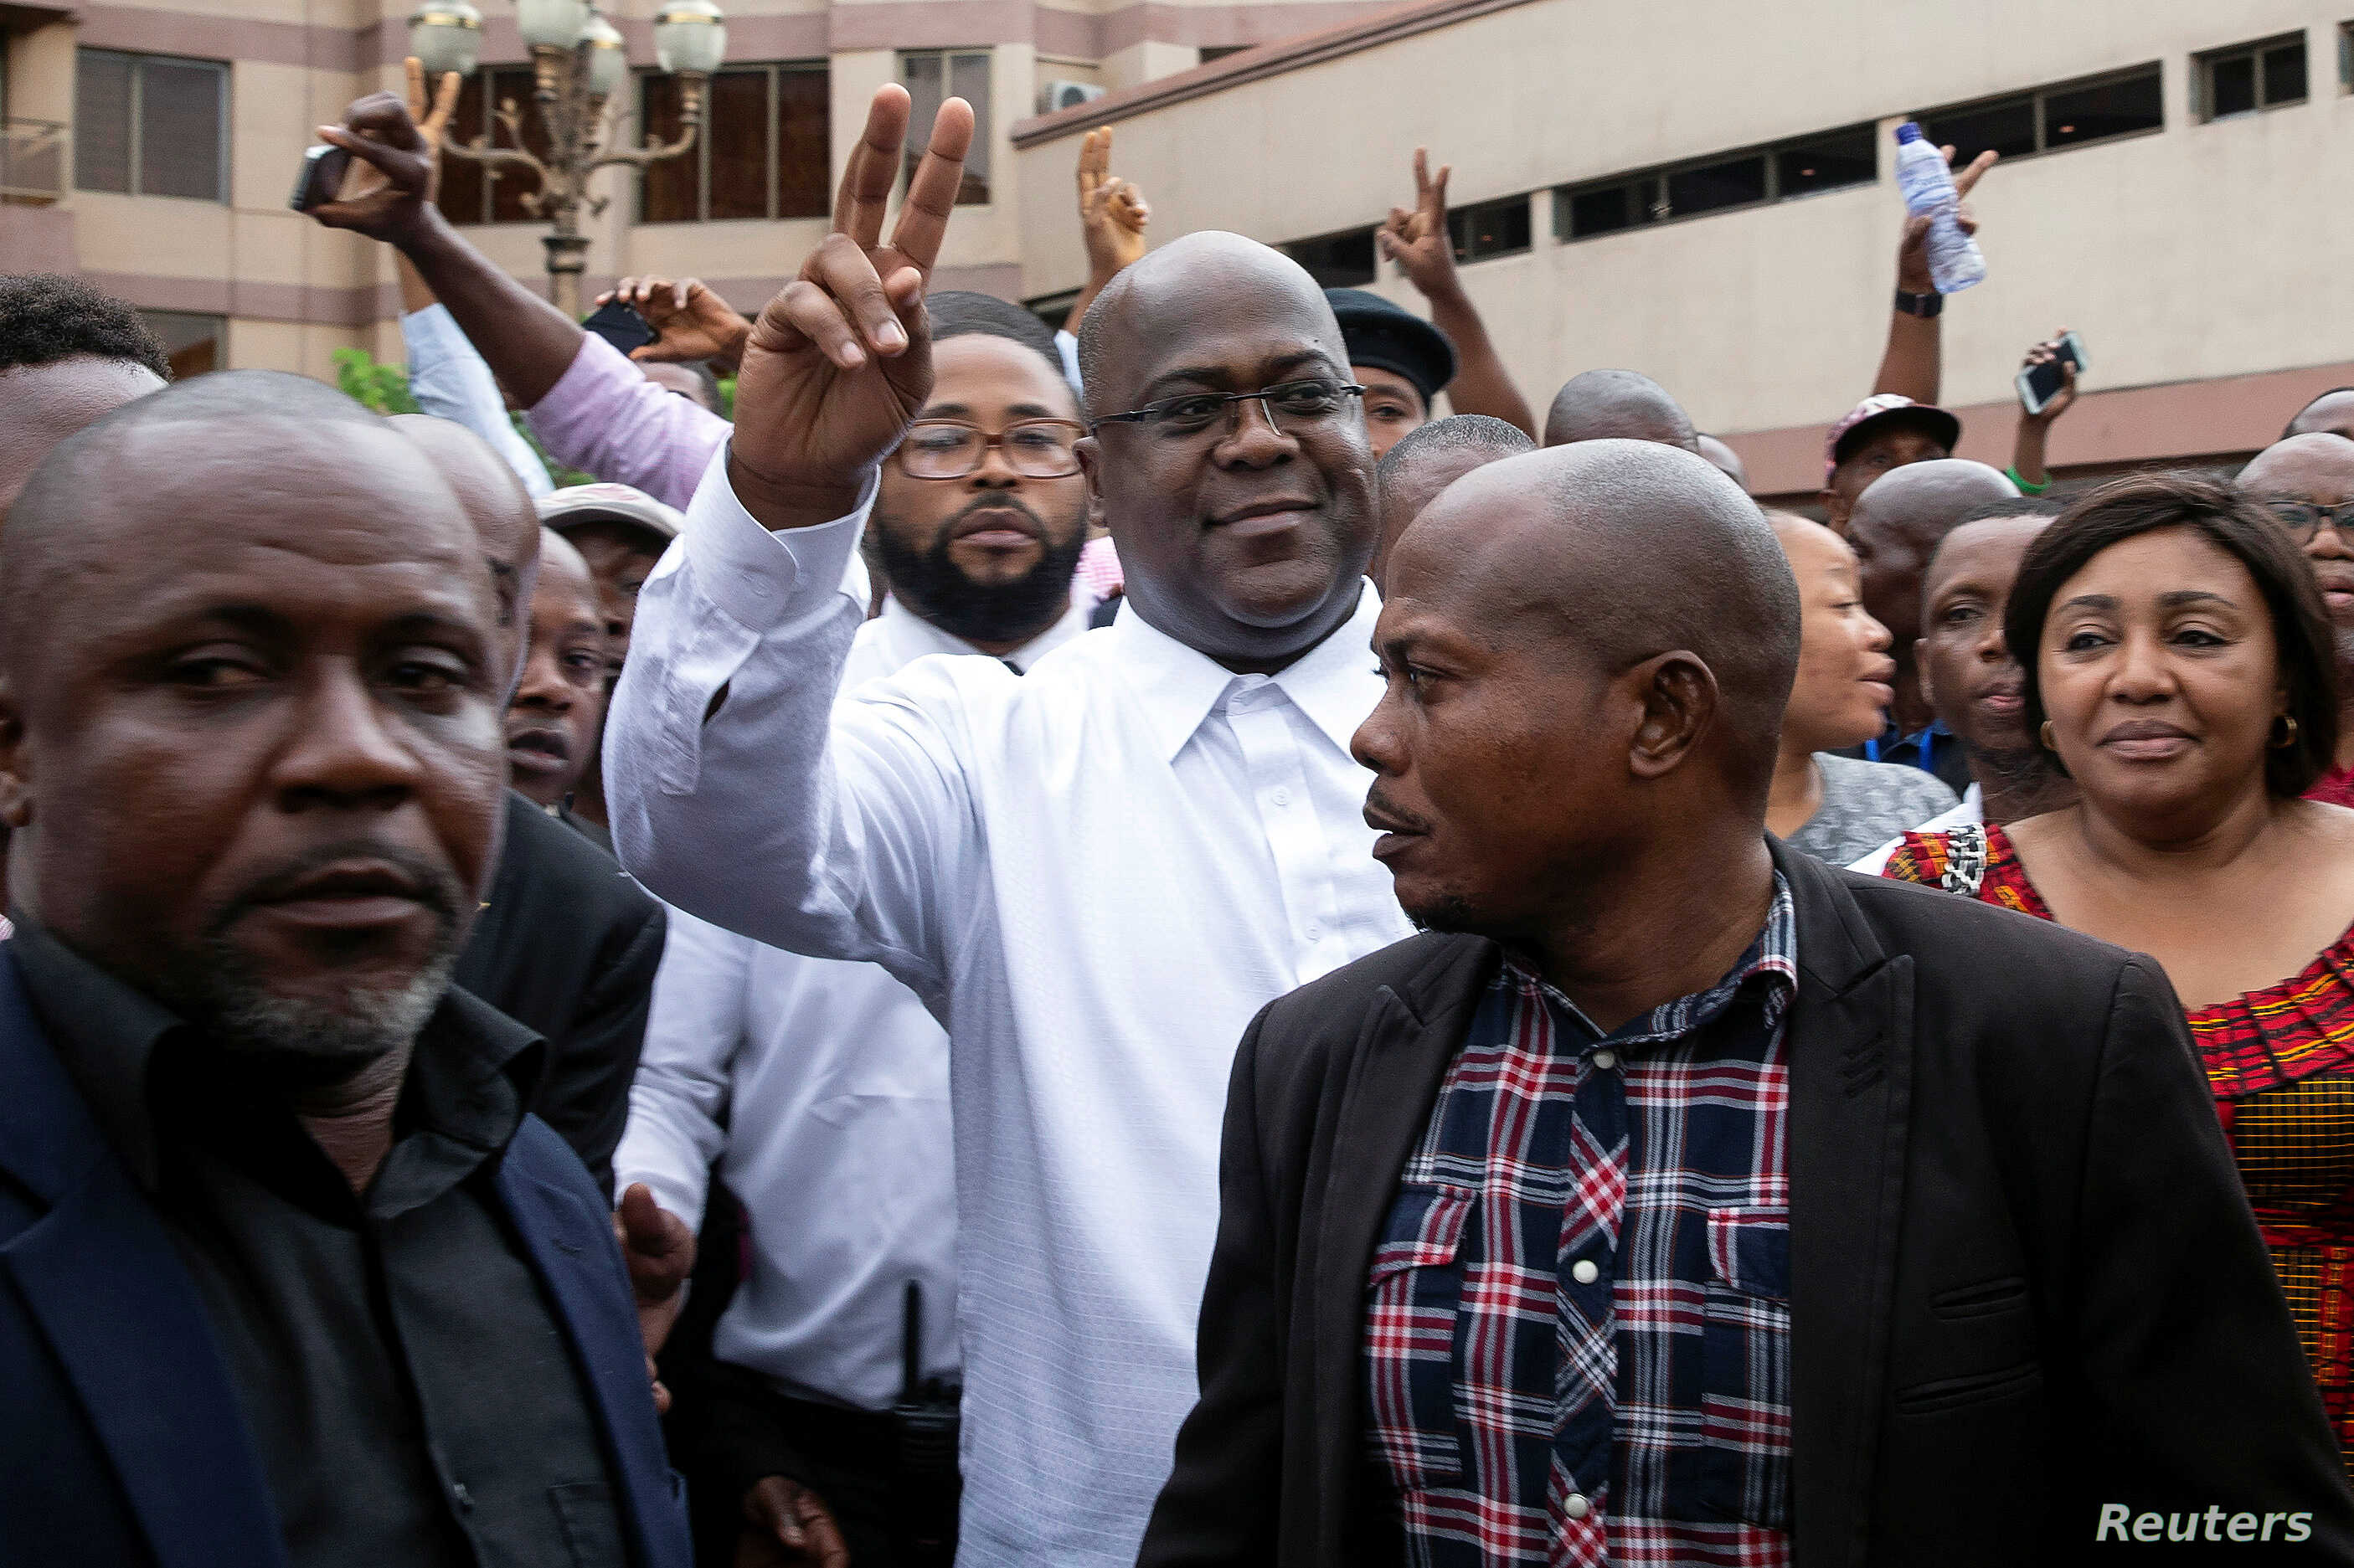 Felix Tshisekedi, leader main DRC opposition party, Union for Democracy and Social Progress (UDPS) who has been declared the winner of the presidential elections, gestures to his supporters in Kinshasa, Jan. 10, 2019.